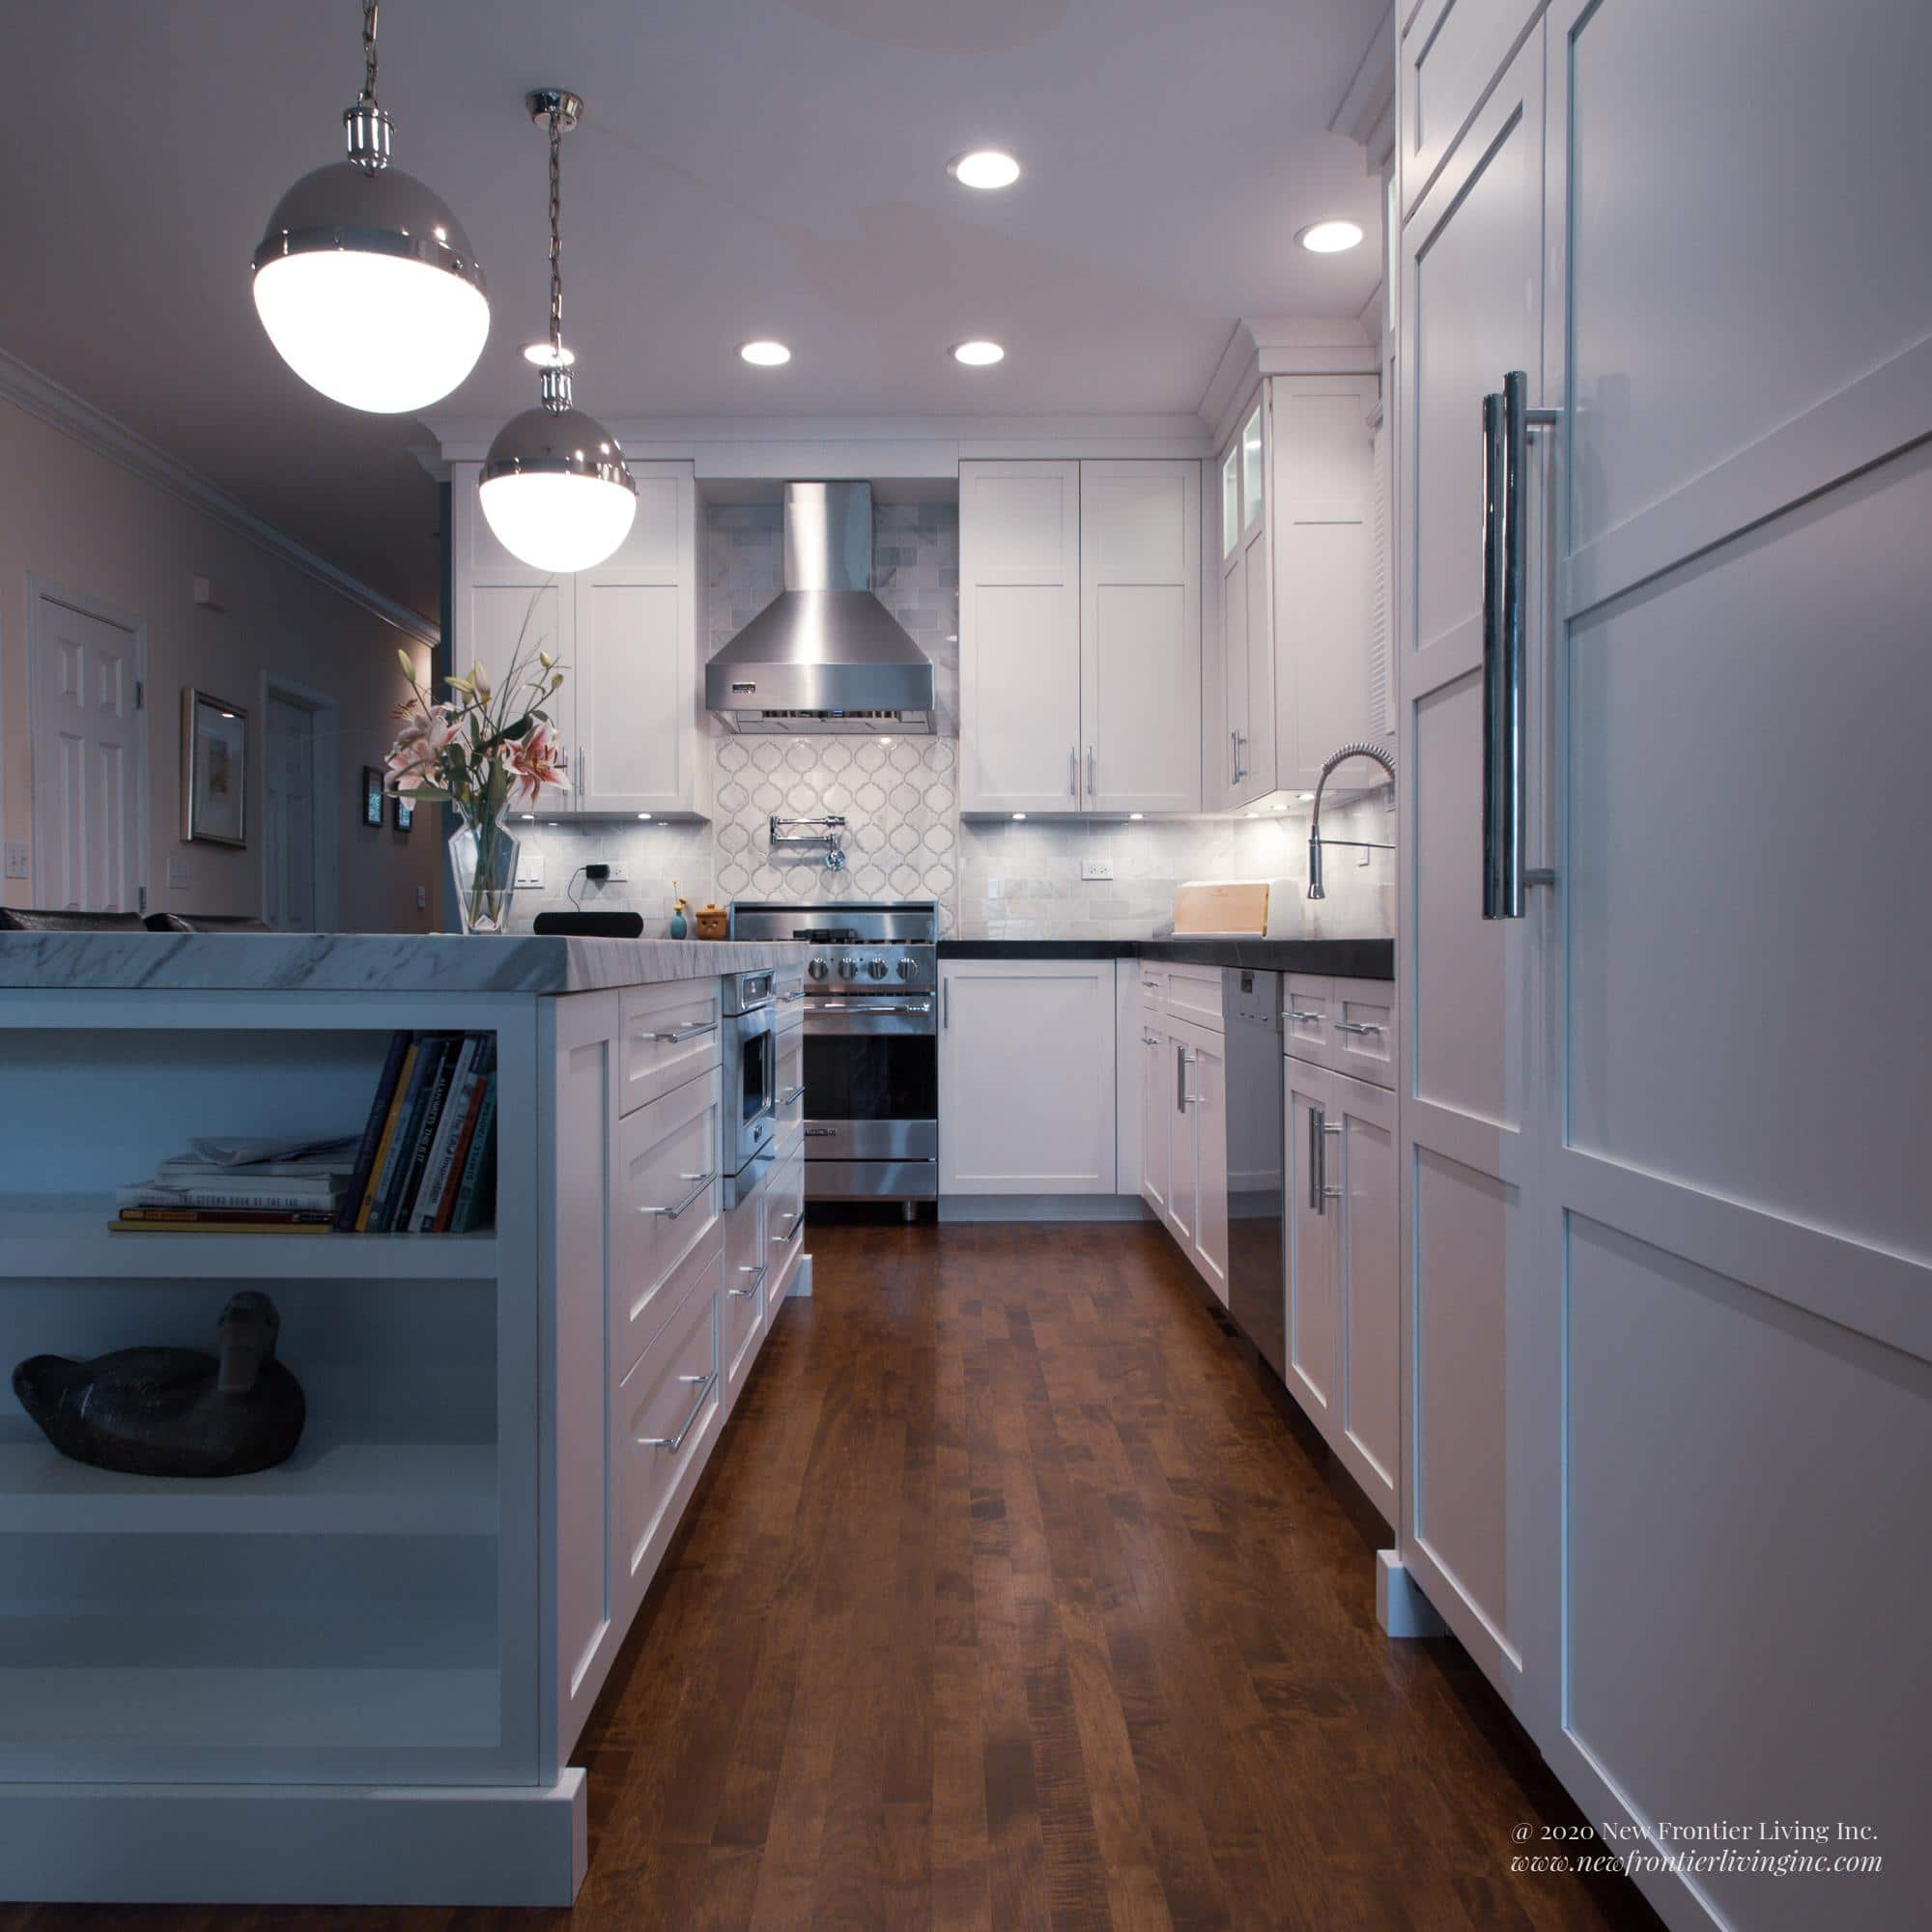 White plain and fancy kitchen with island and light gray countertop and long wall cabinets on the right